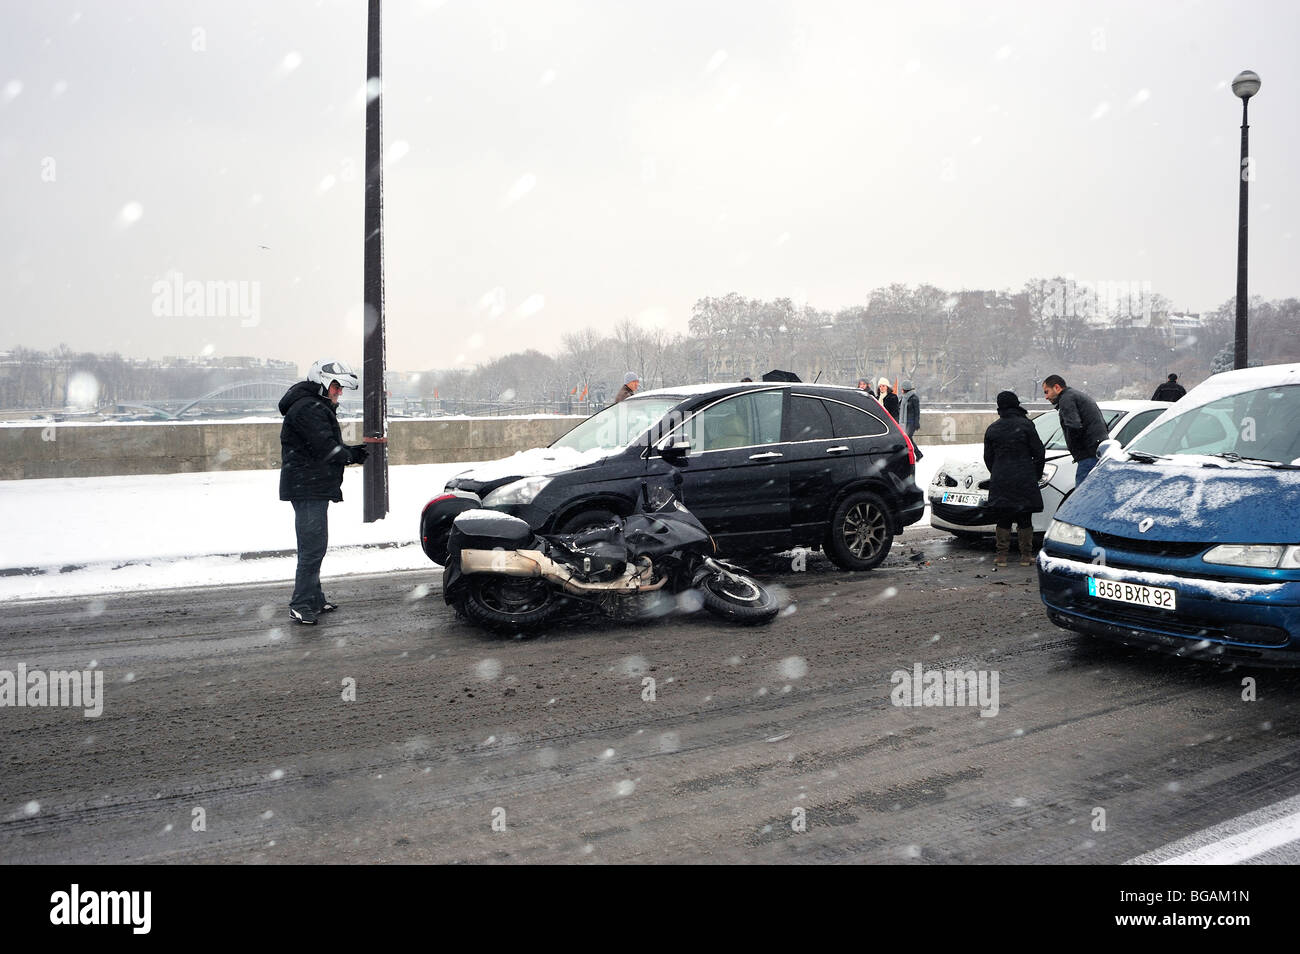 paris france automobile and motorcycle car accident during winter